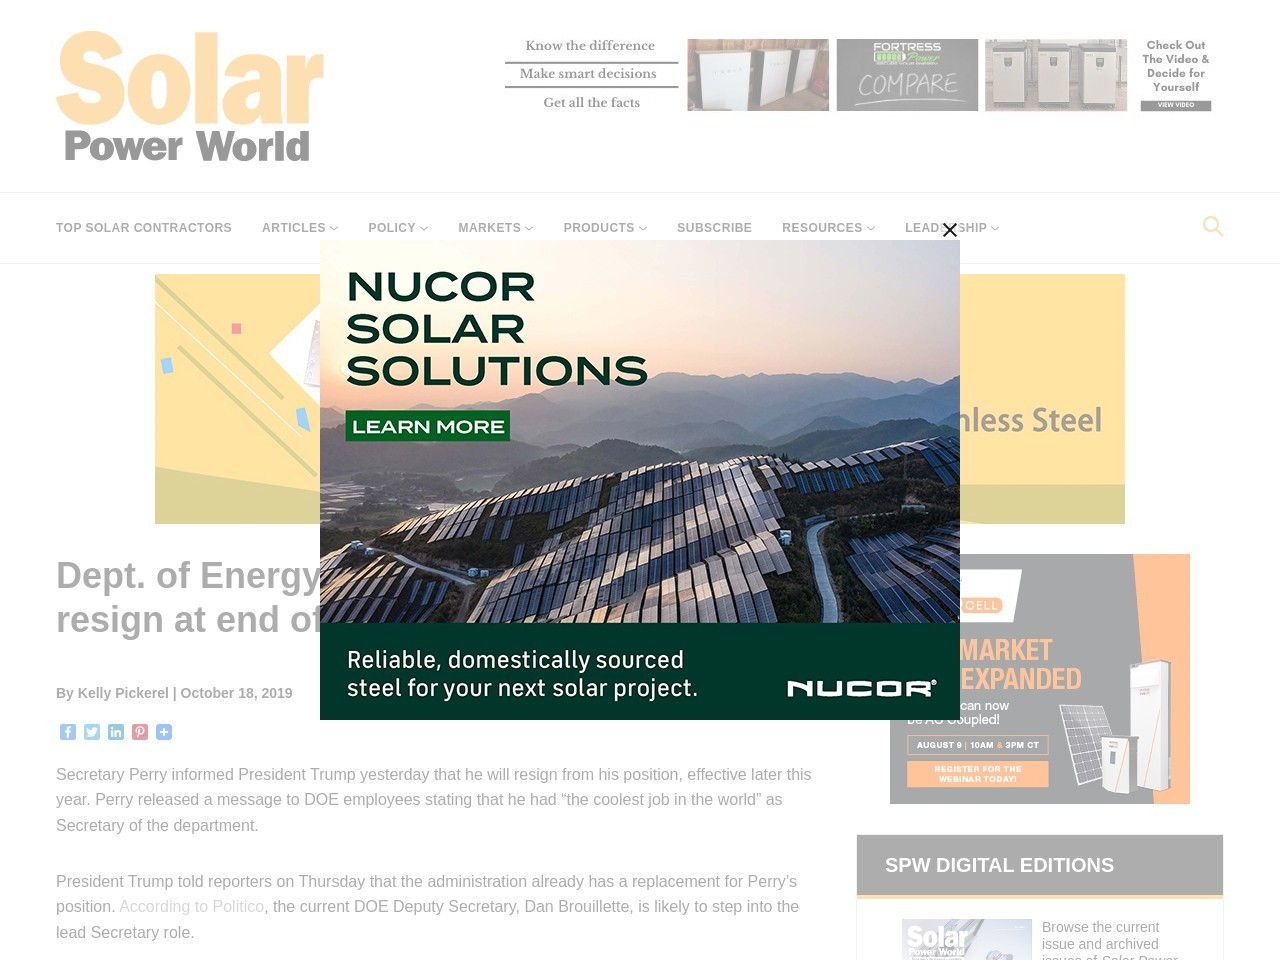 Dept. of Energy Secretary Rick Perry to resign at end of year